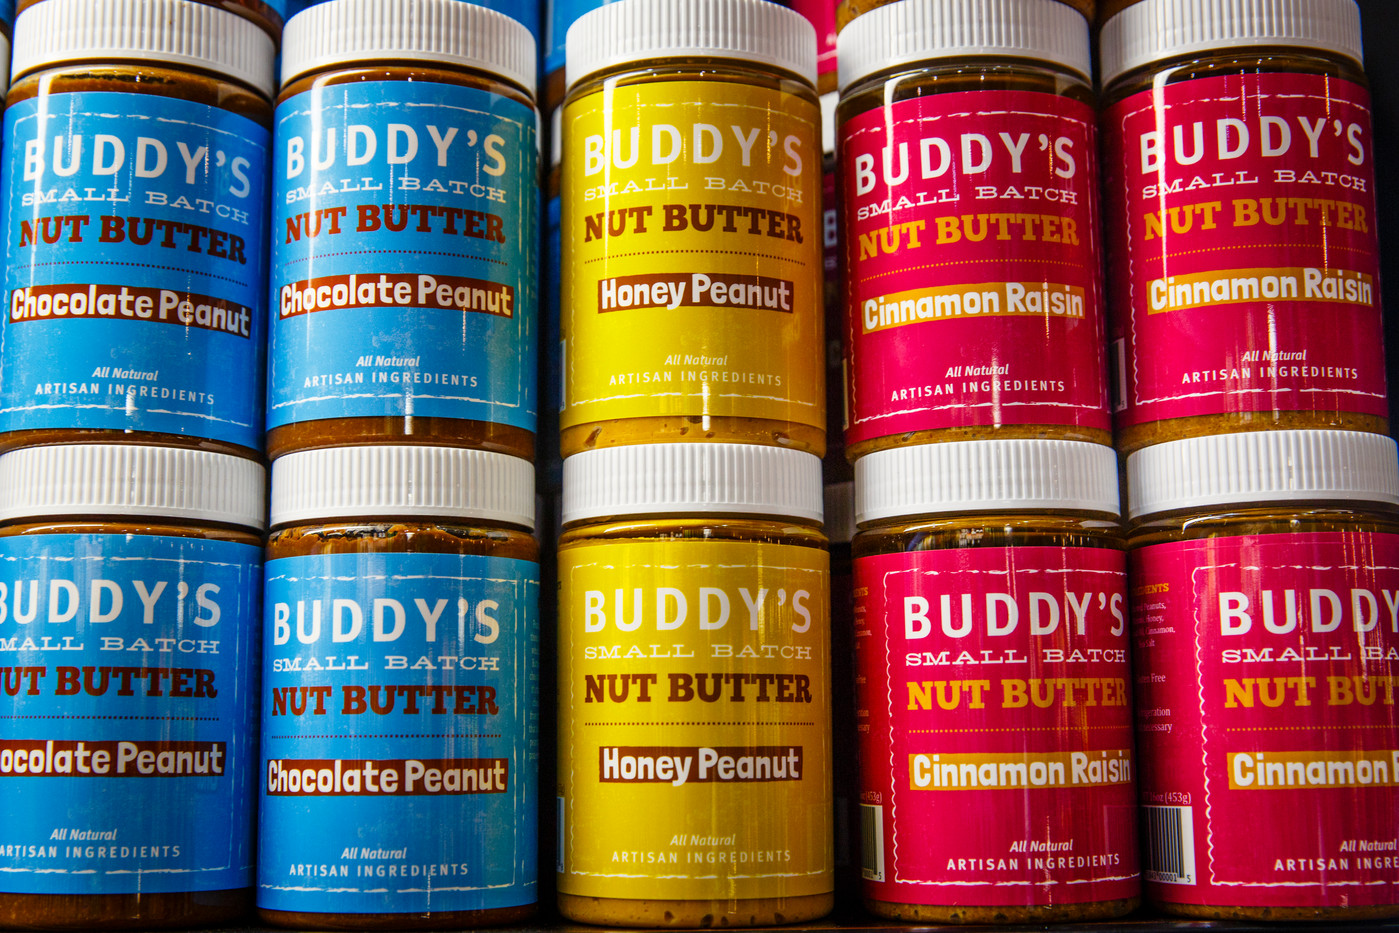 Buddy's Nut Butter